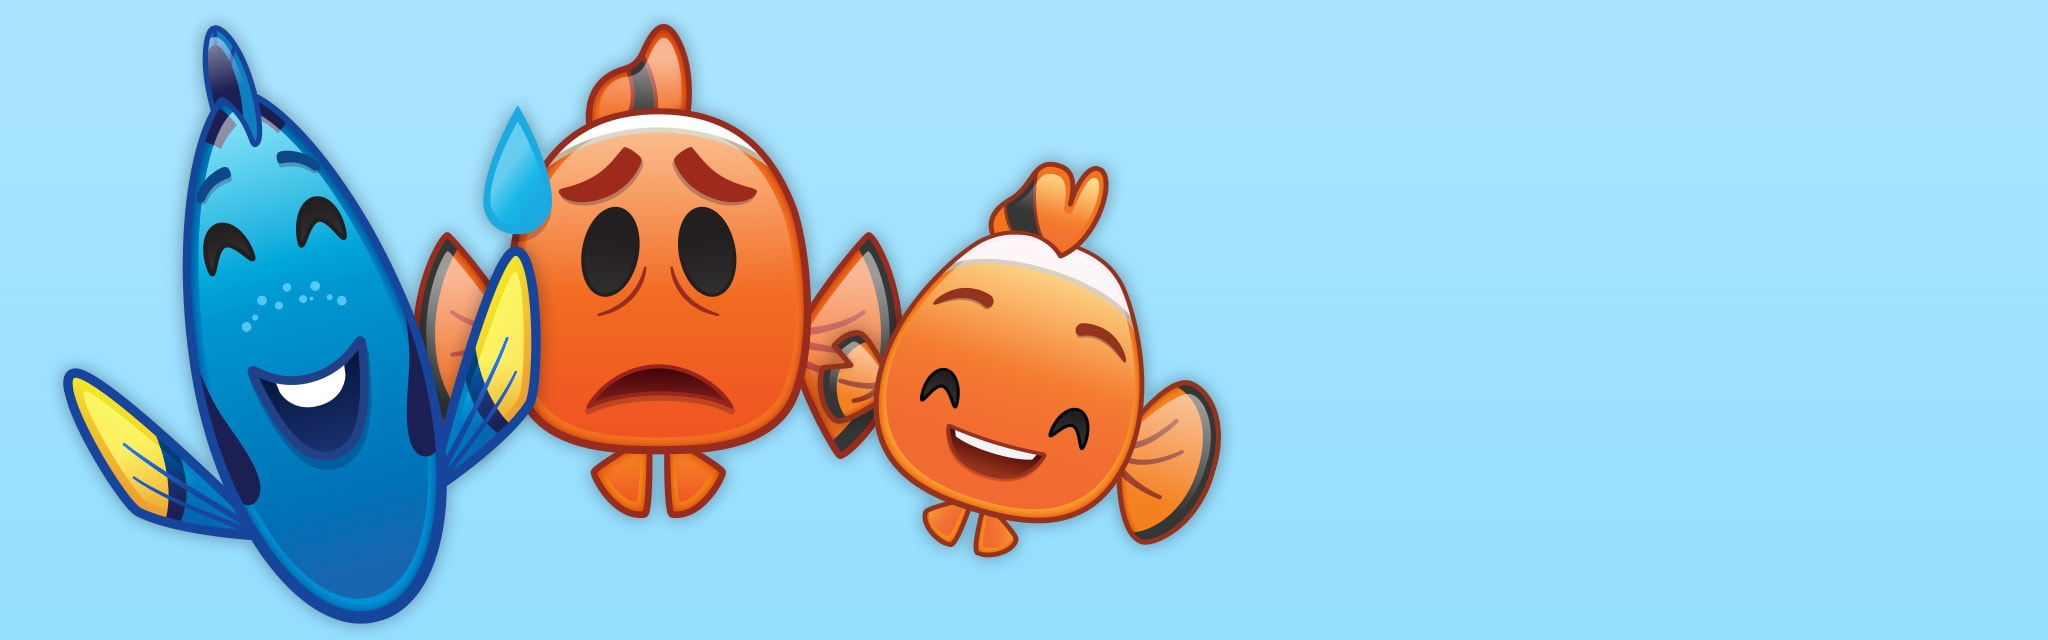 As Told By Emoji Finding Nemo Hero - TH